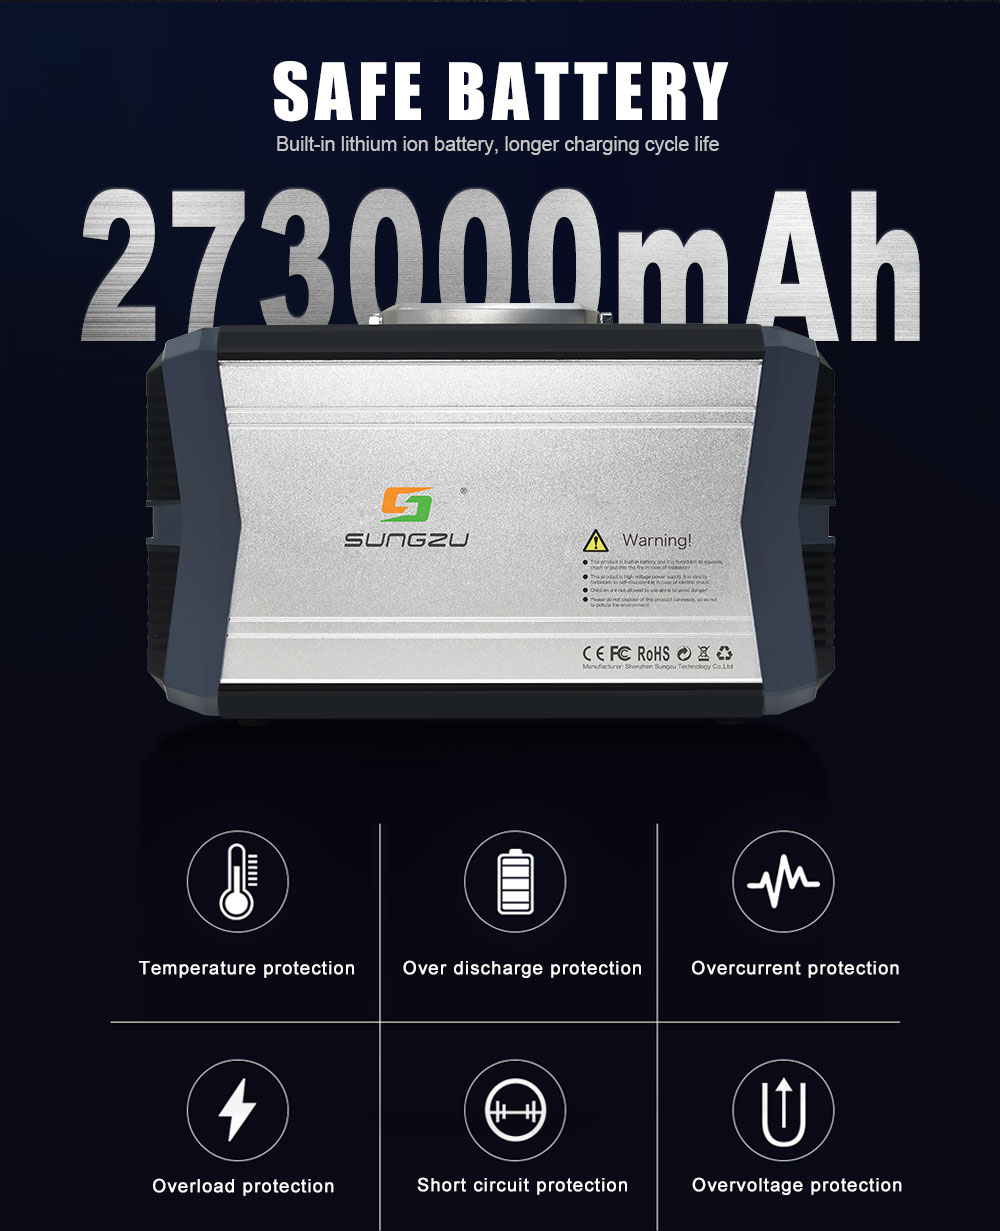 SUNGZU 1000W SAFE BATTERY 273000MAH